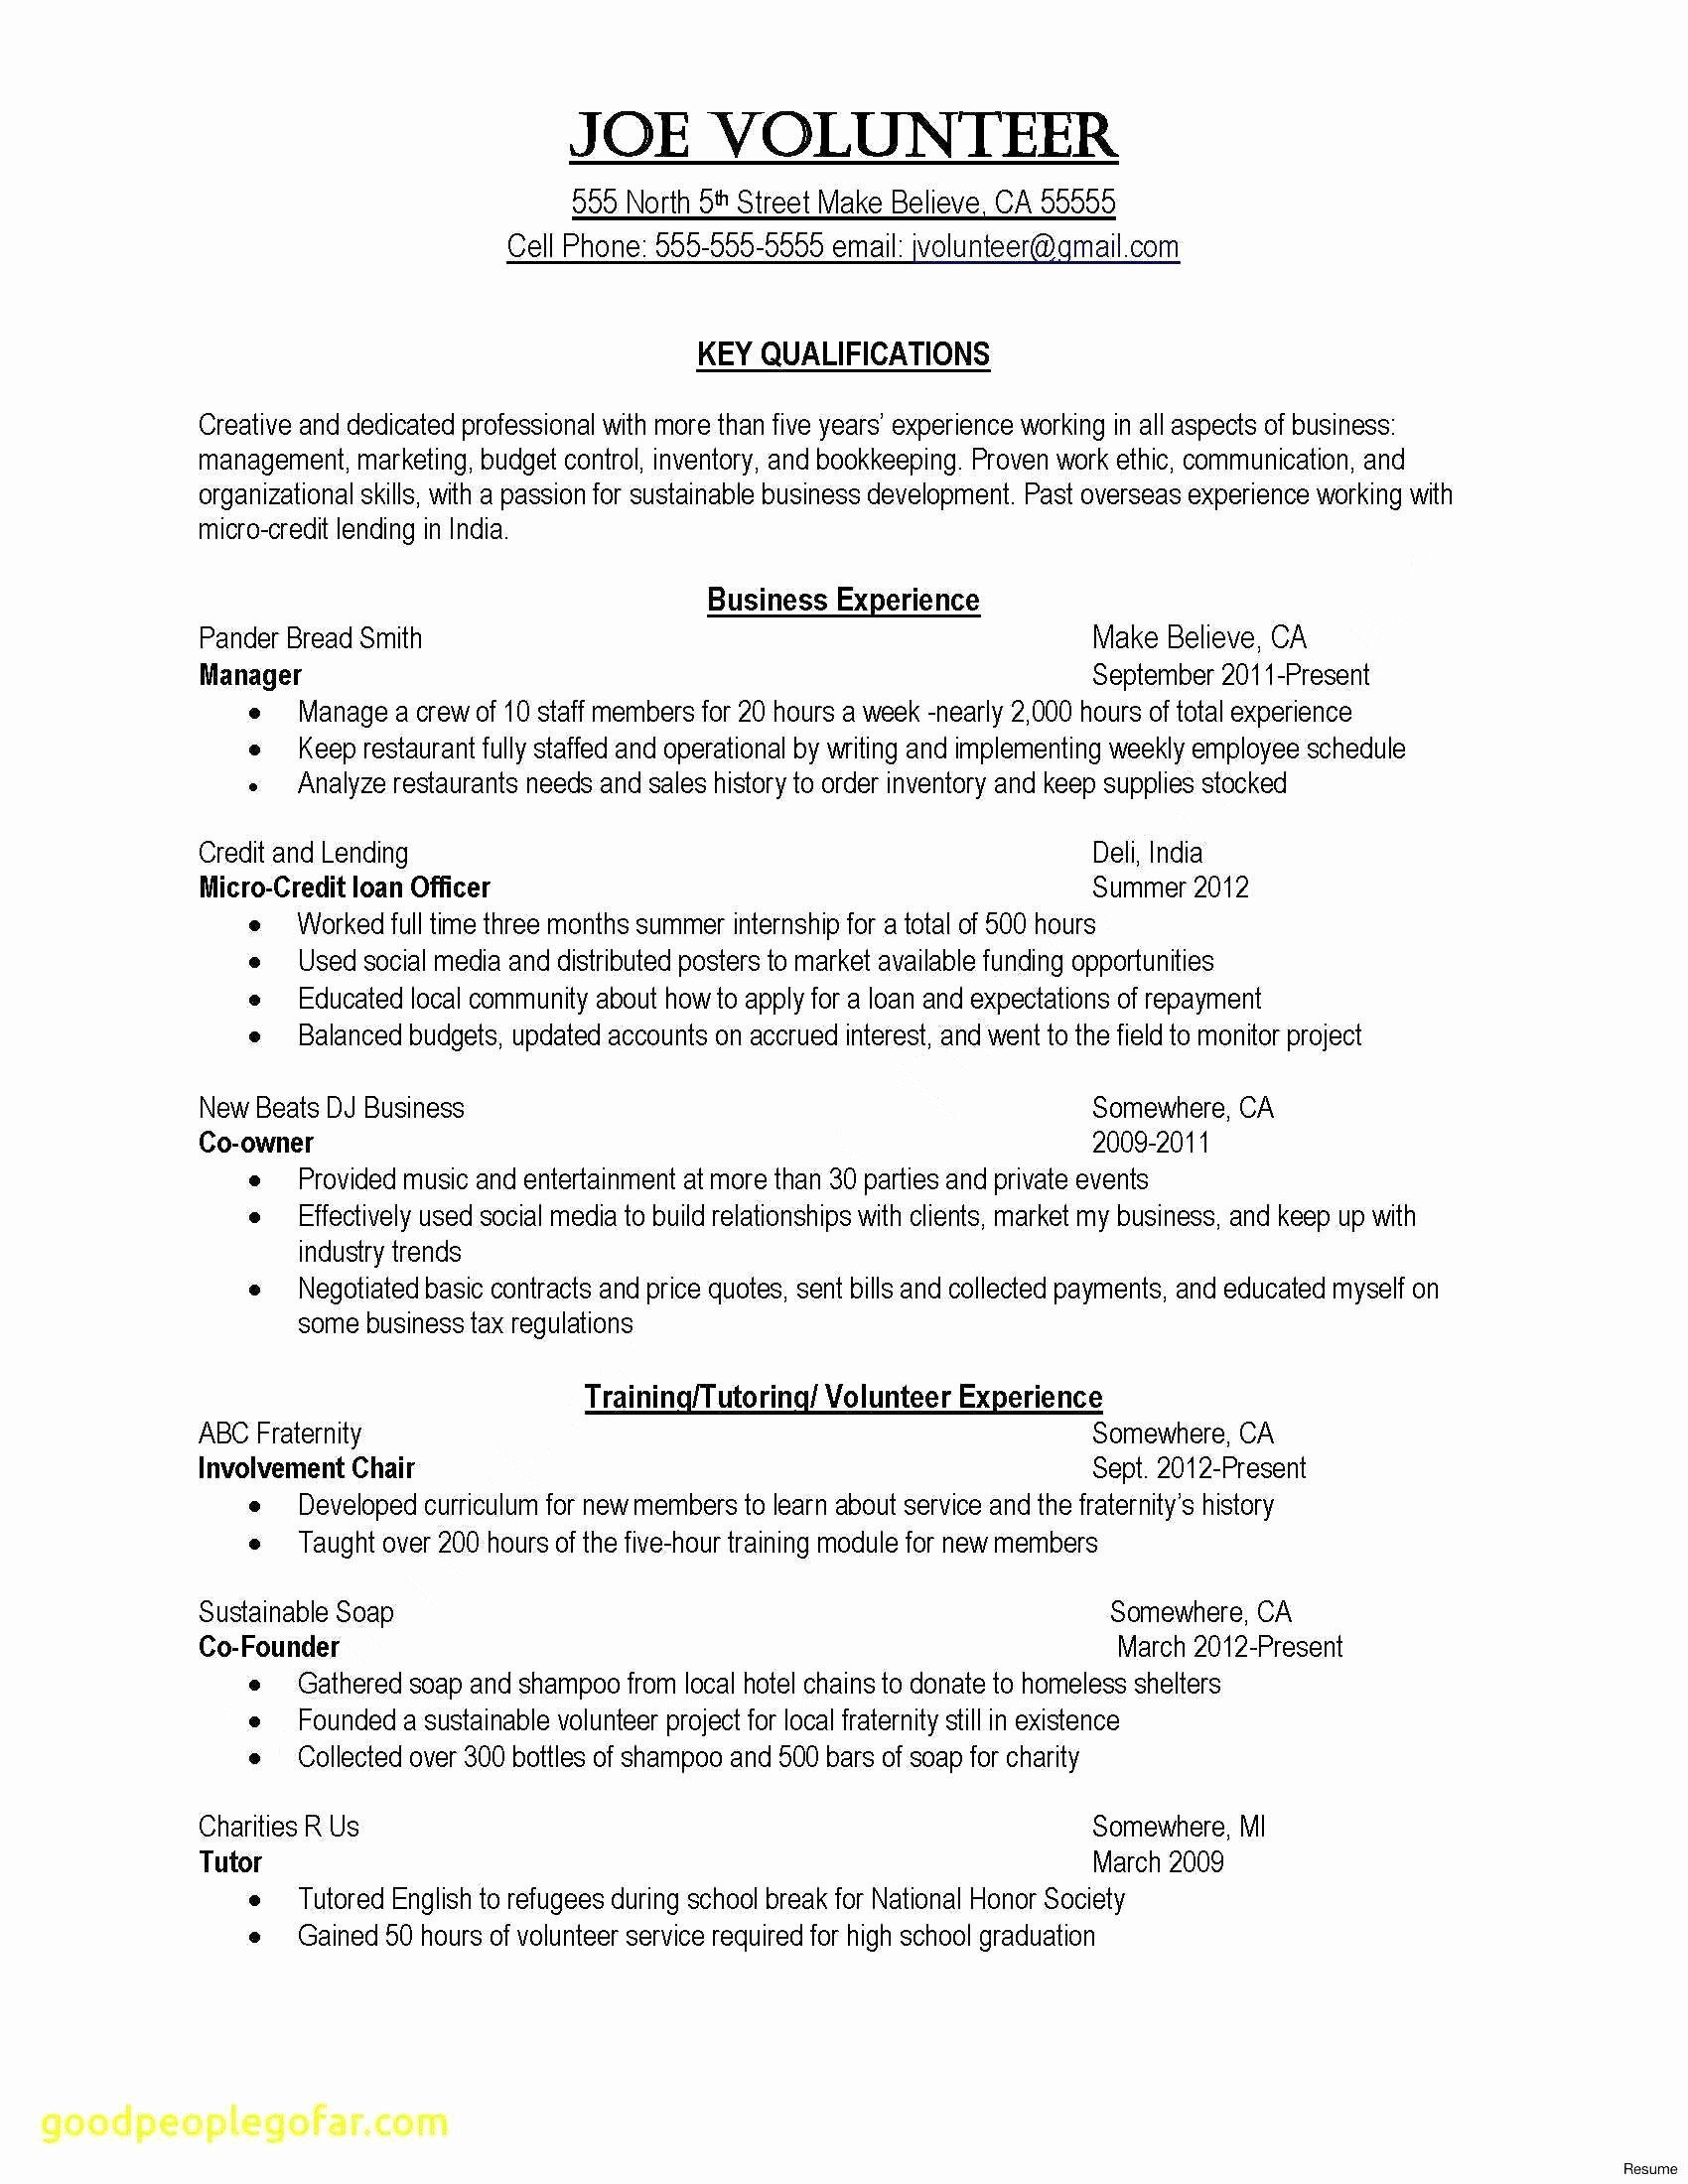 free resume builder reddit awesome background music mallerstang project manager writing Resume Fully Free Resume Builder